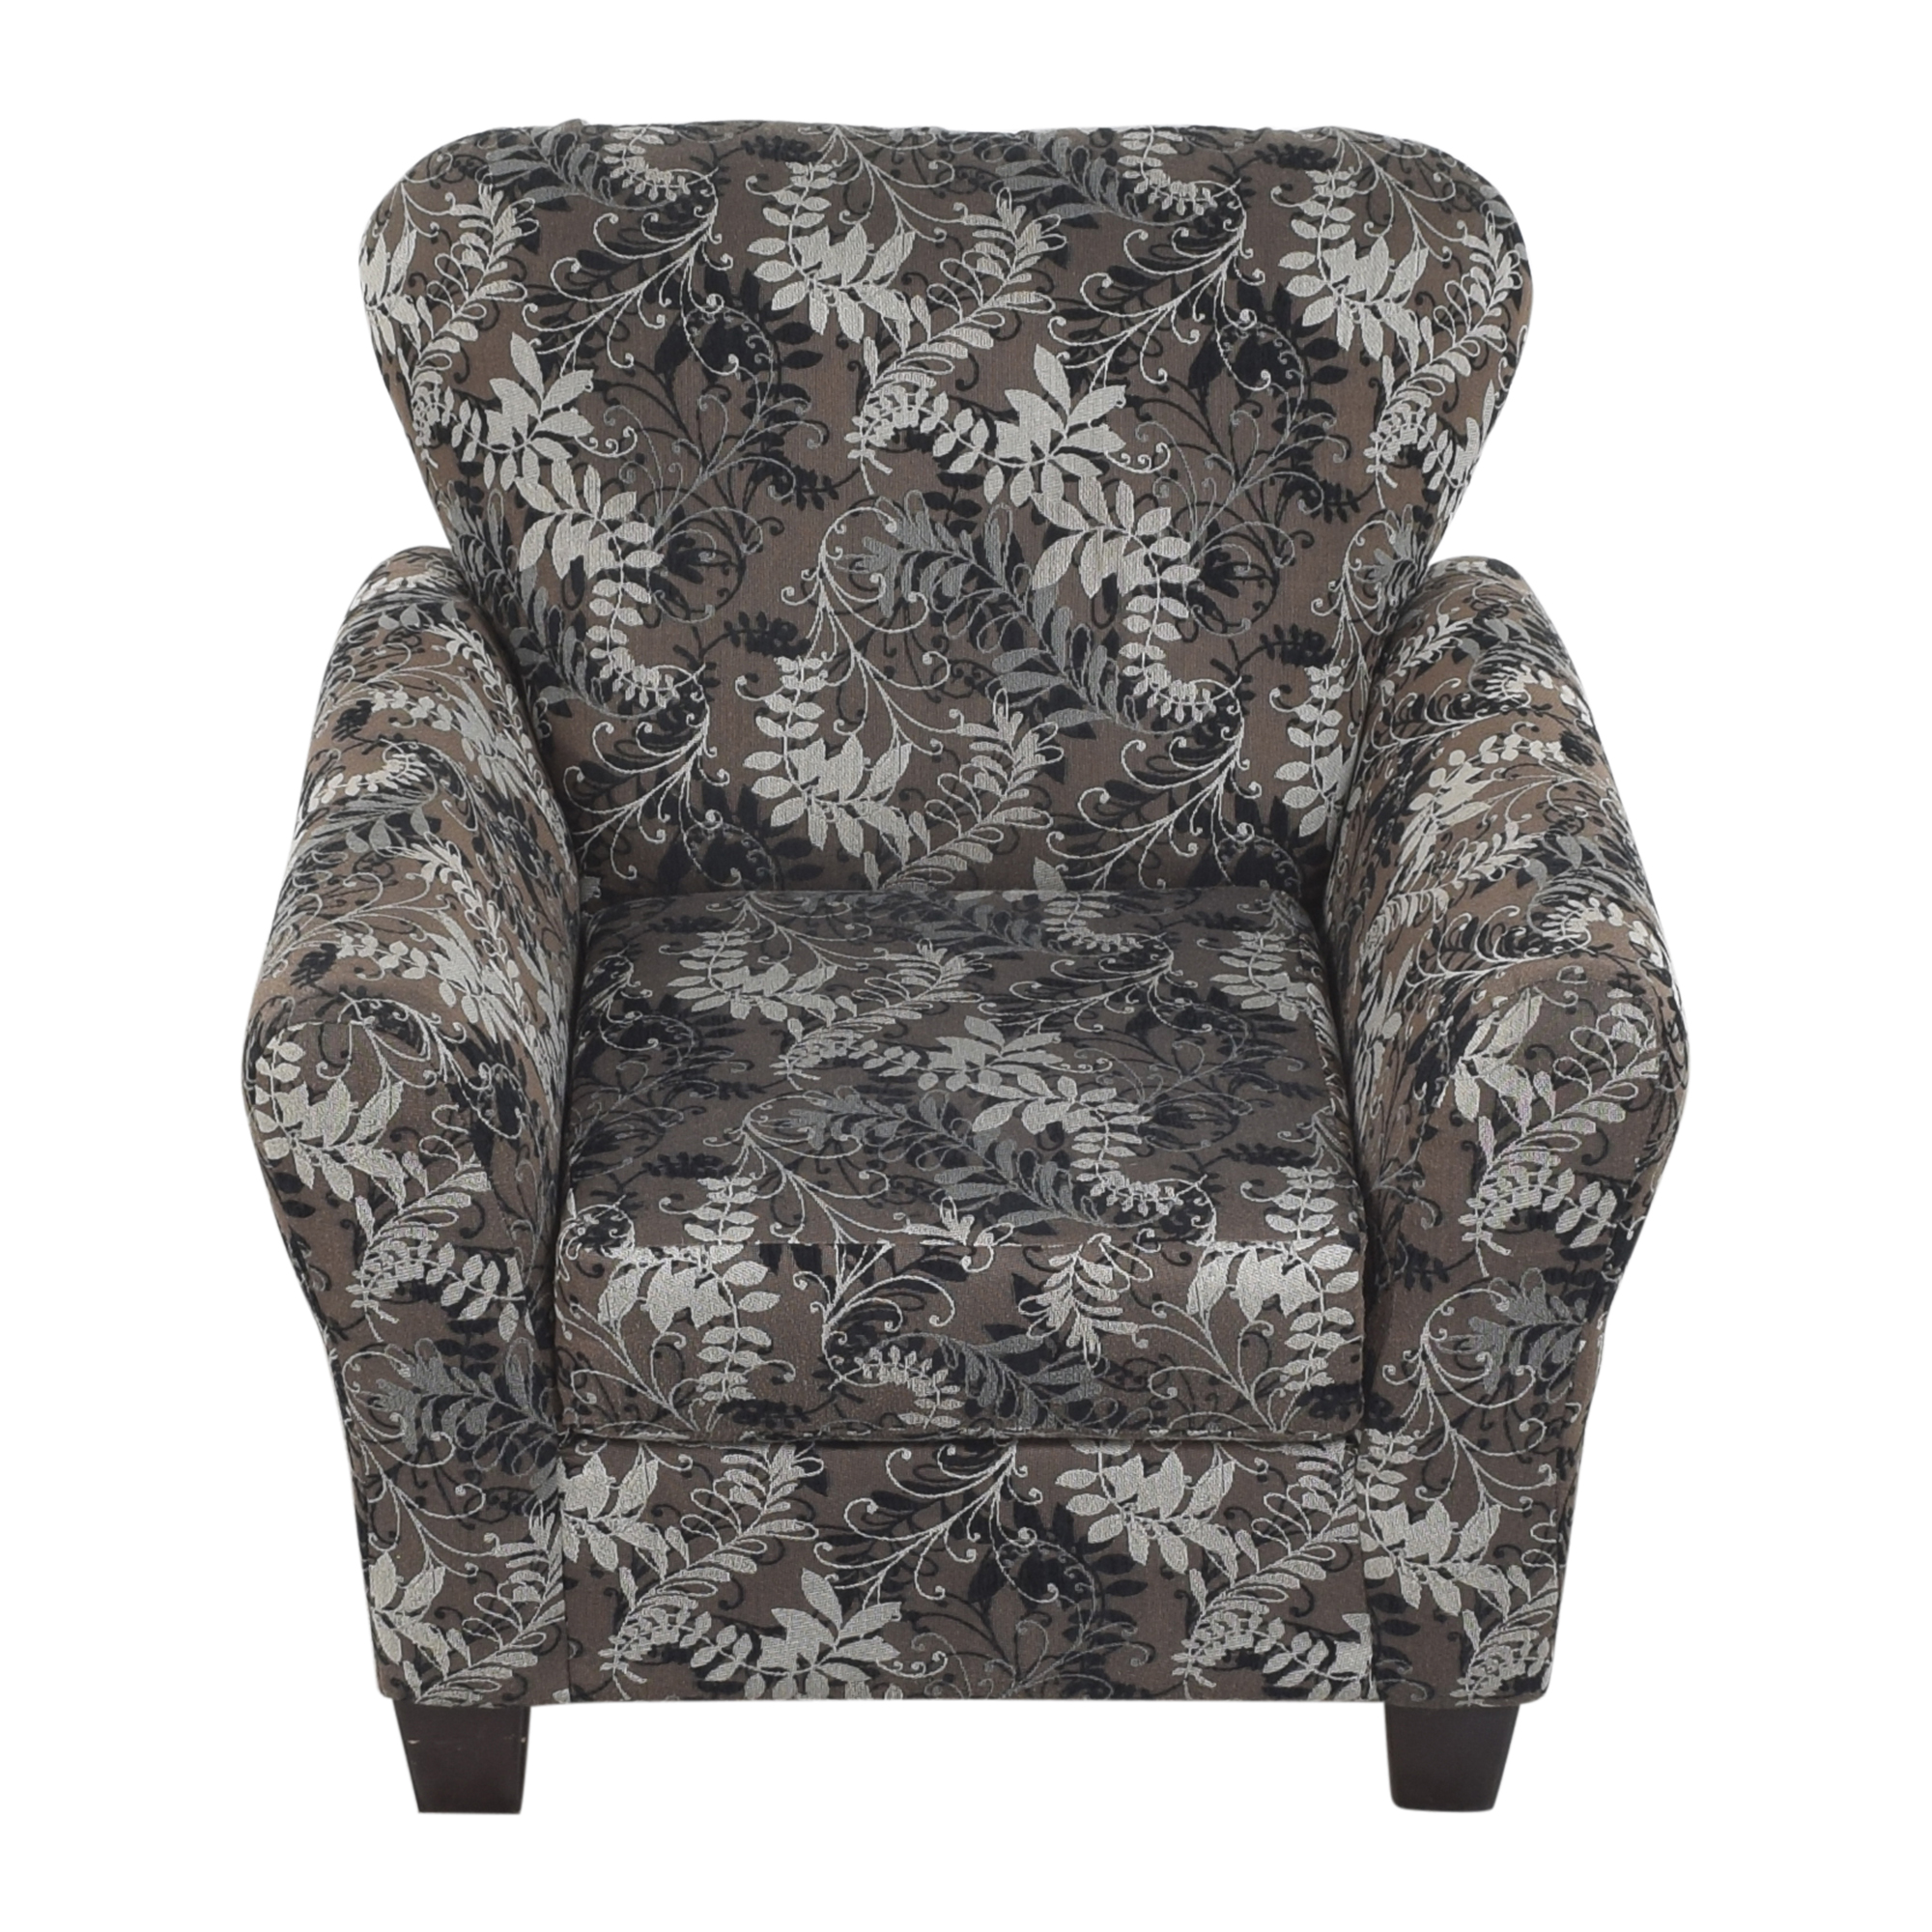 Raymour & Flanigan Raymour & Flanigan Hartley Accent Chair ct